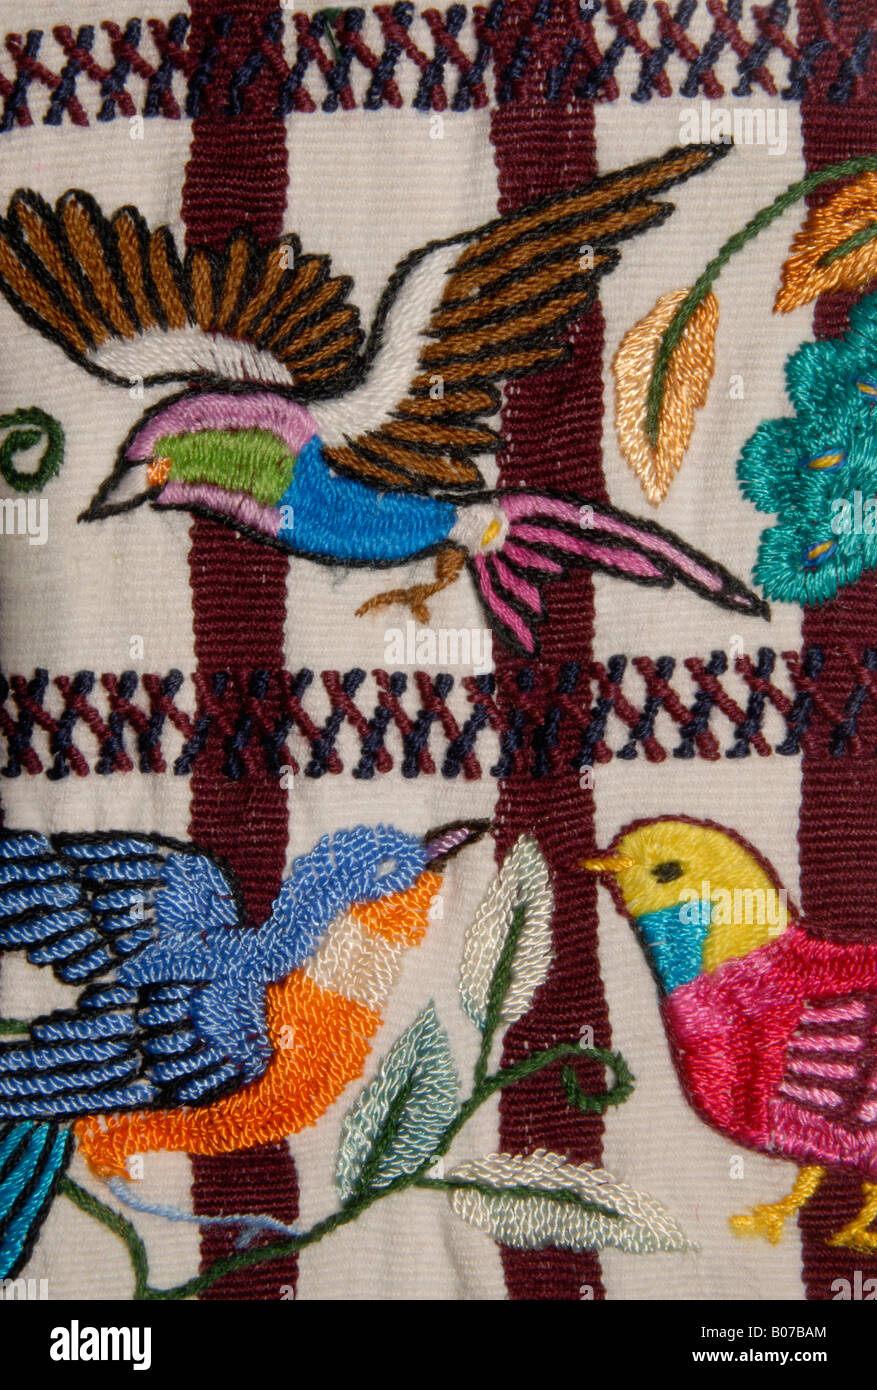 Detail of hand embroidered bird motifs on a pair of trousers from Santiago Atitlán, Guatemala - Stock Image